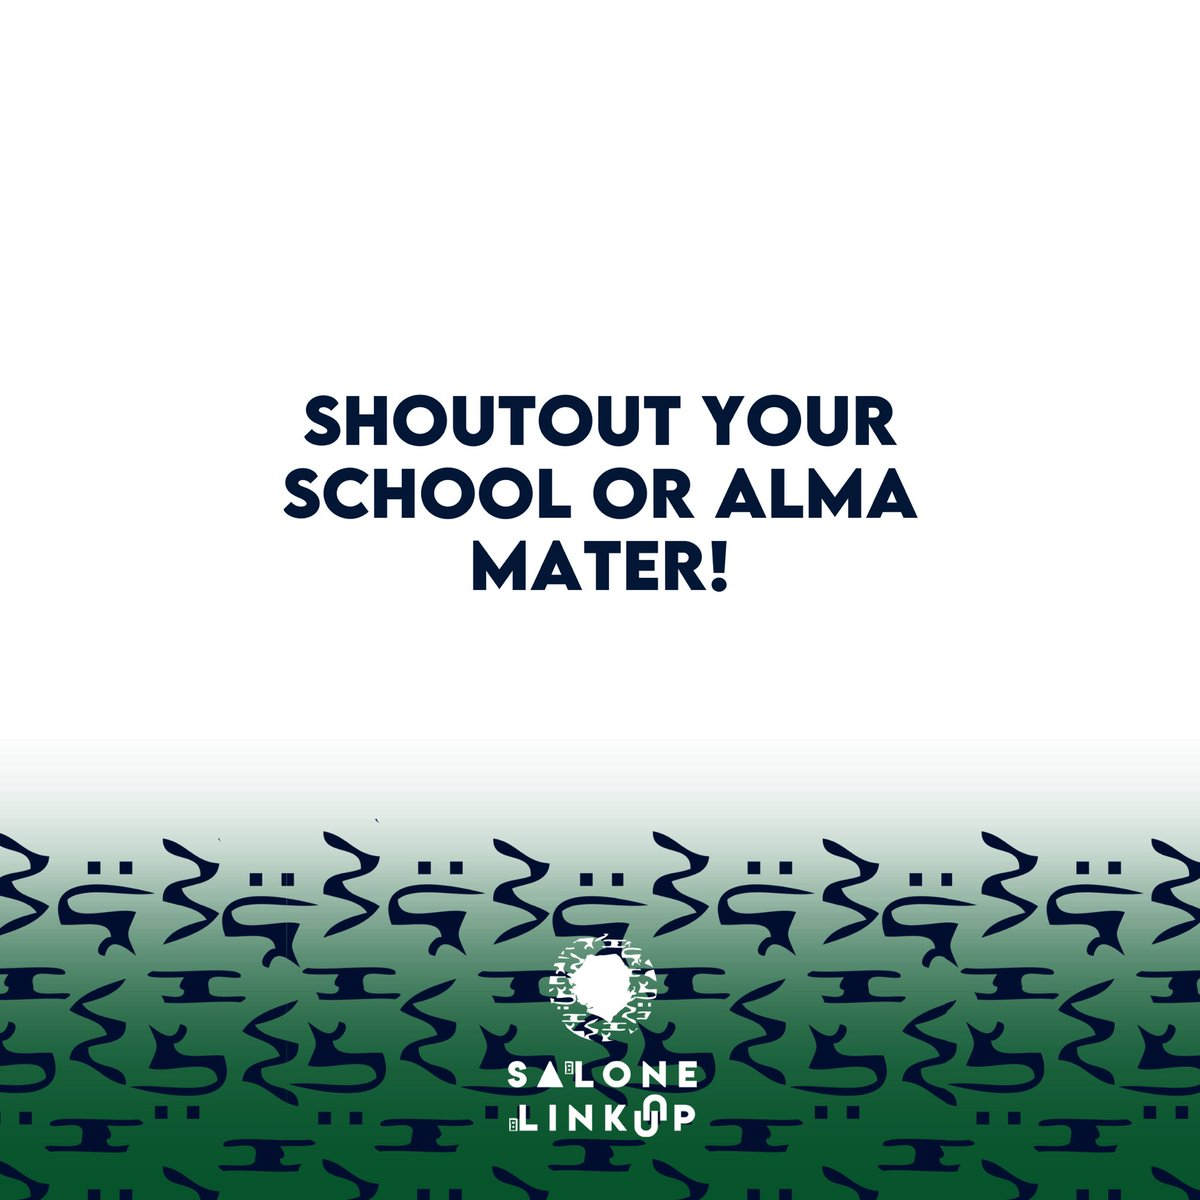 Shoutout your school or alma mater and tell us what your school is known for. . . . . #SaloneLinkup #YSLP #SaloneGrad #SaloneTwitter https://t.co/tGvEGis1Mc